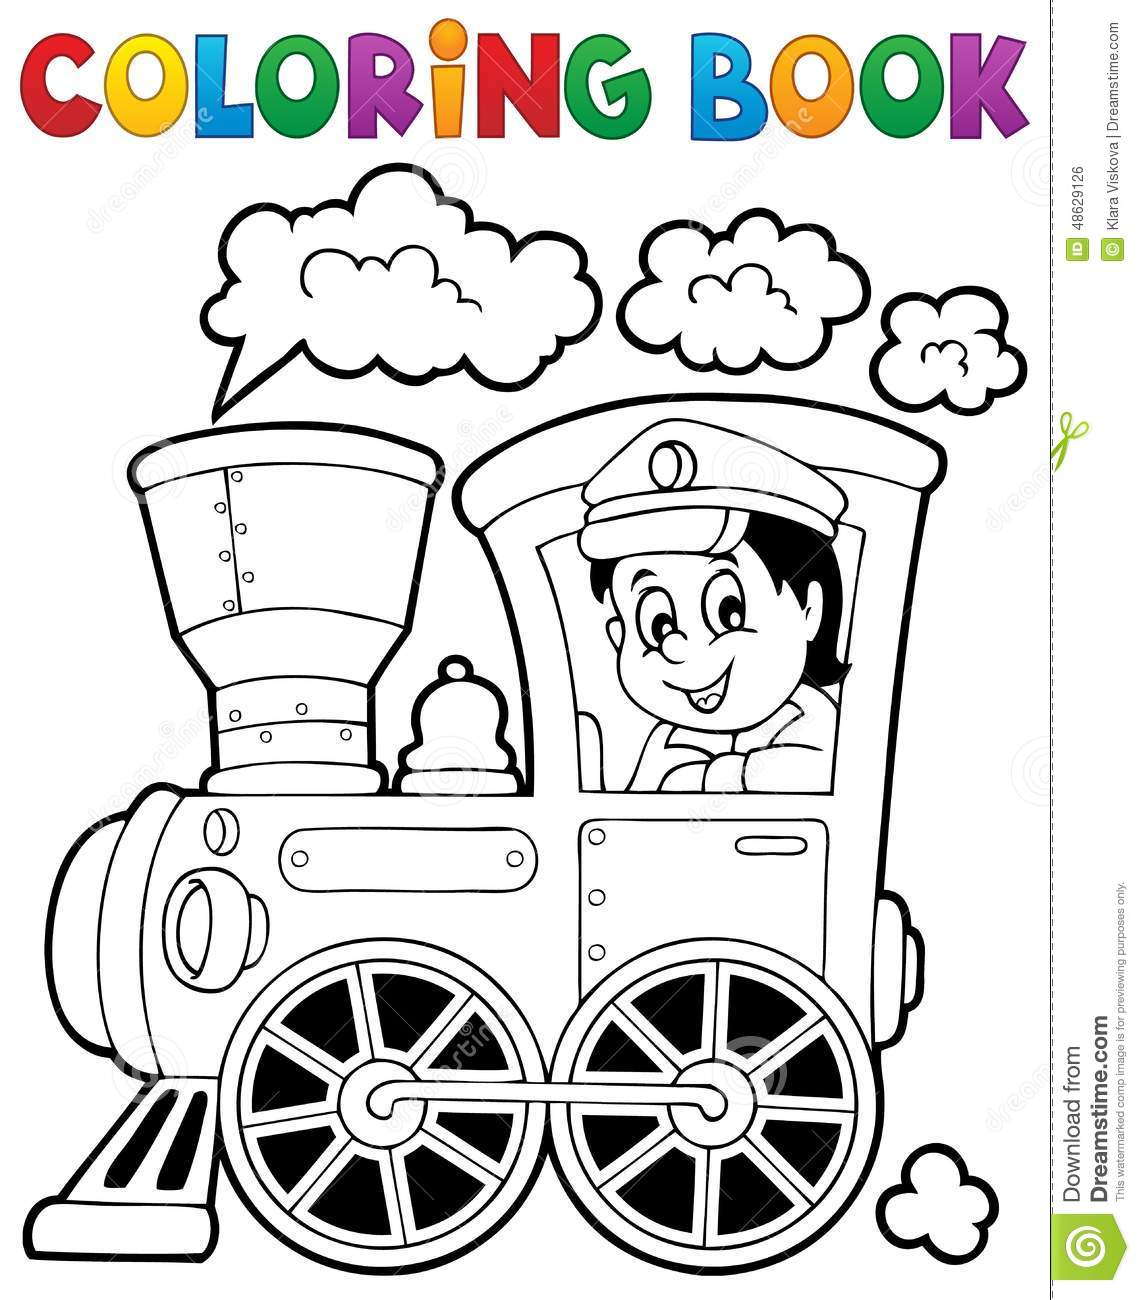 Coloring Book Train Theme 1 Stock Vector - Illustration of railroad ...